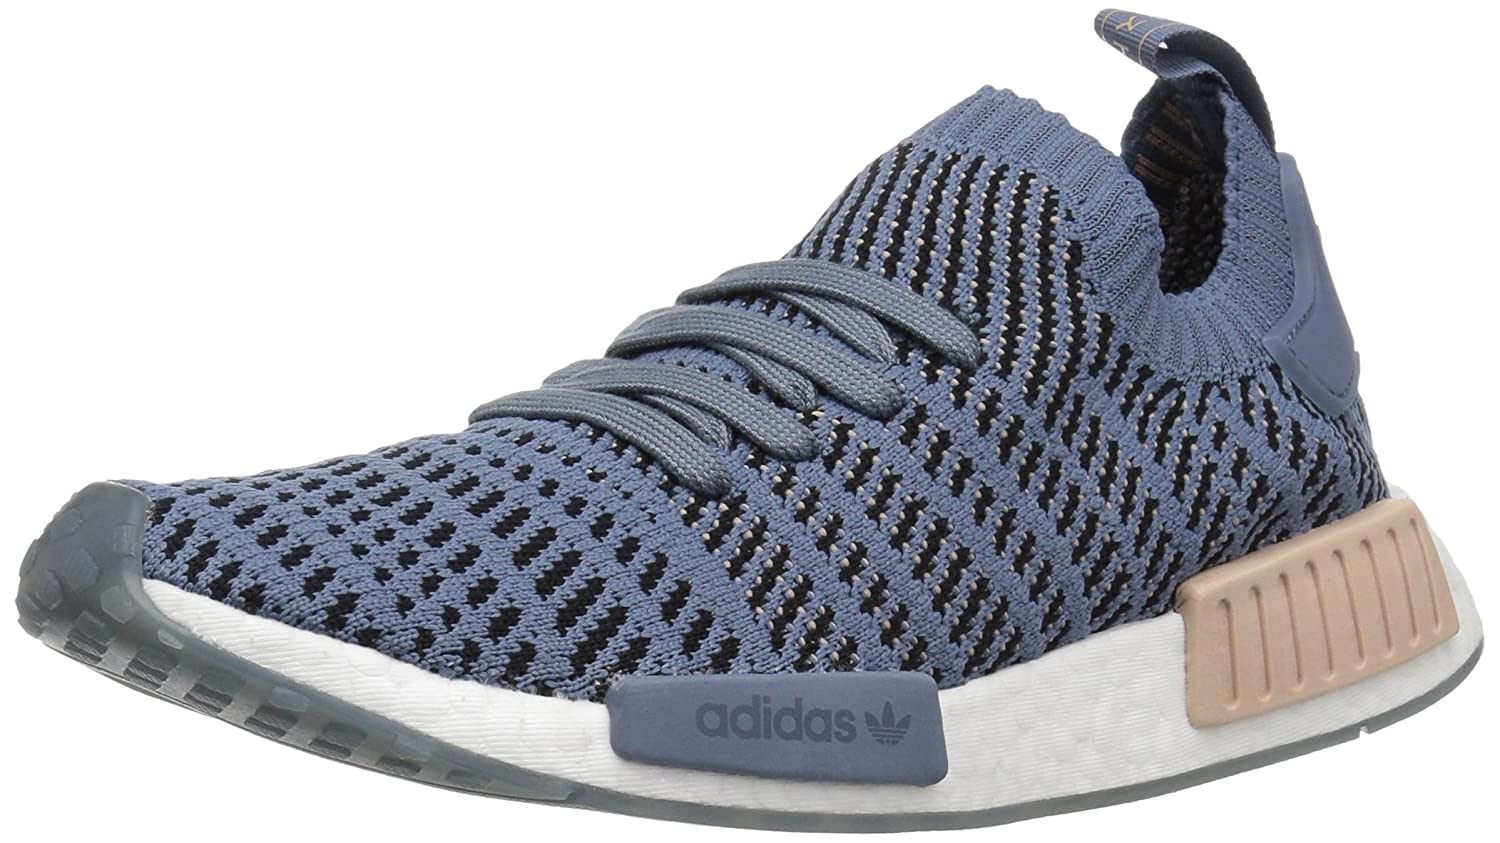 e3c92fab73fbb adidas Women s NMD r1 Primeknit Trainers  Amazon.co.uk  Shoes   Bags